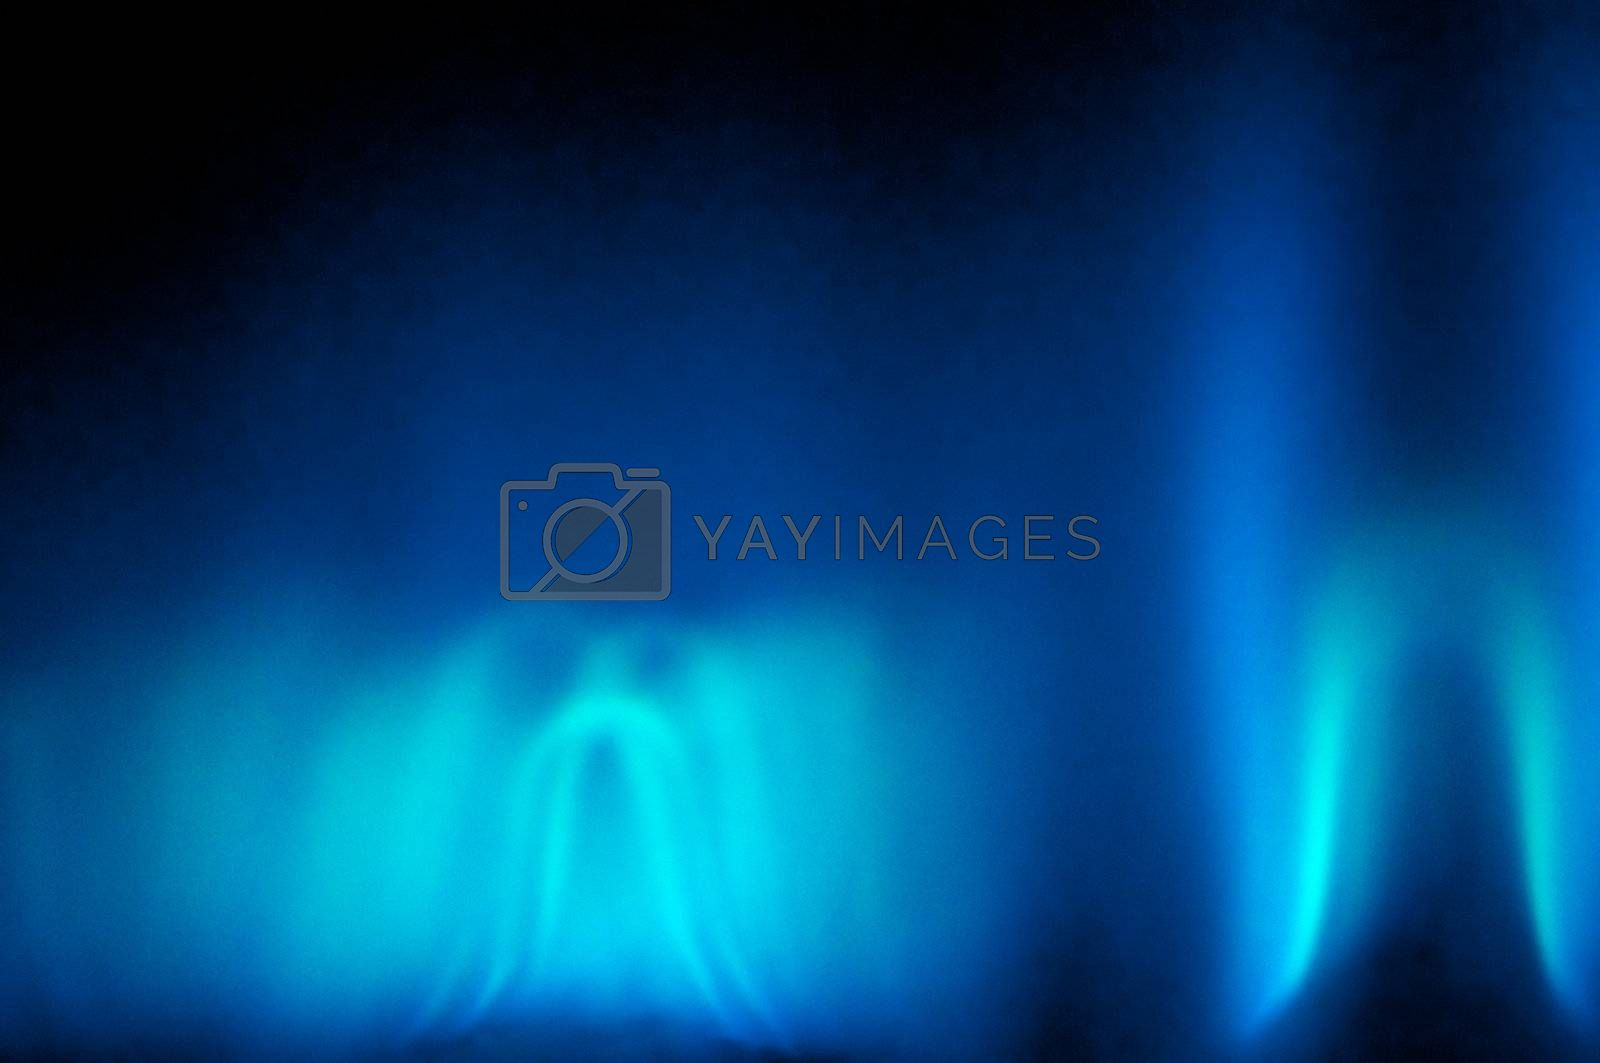 An abstract shot of the blue flame of a gas heater.